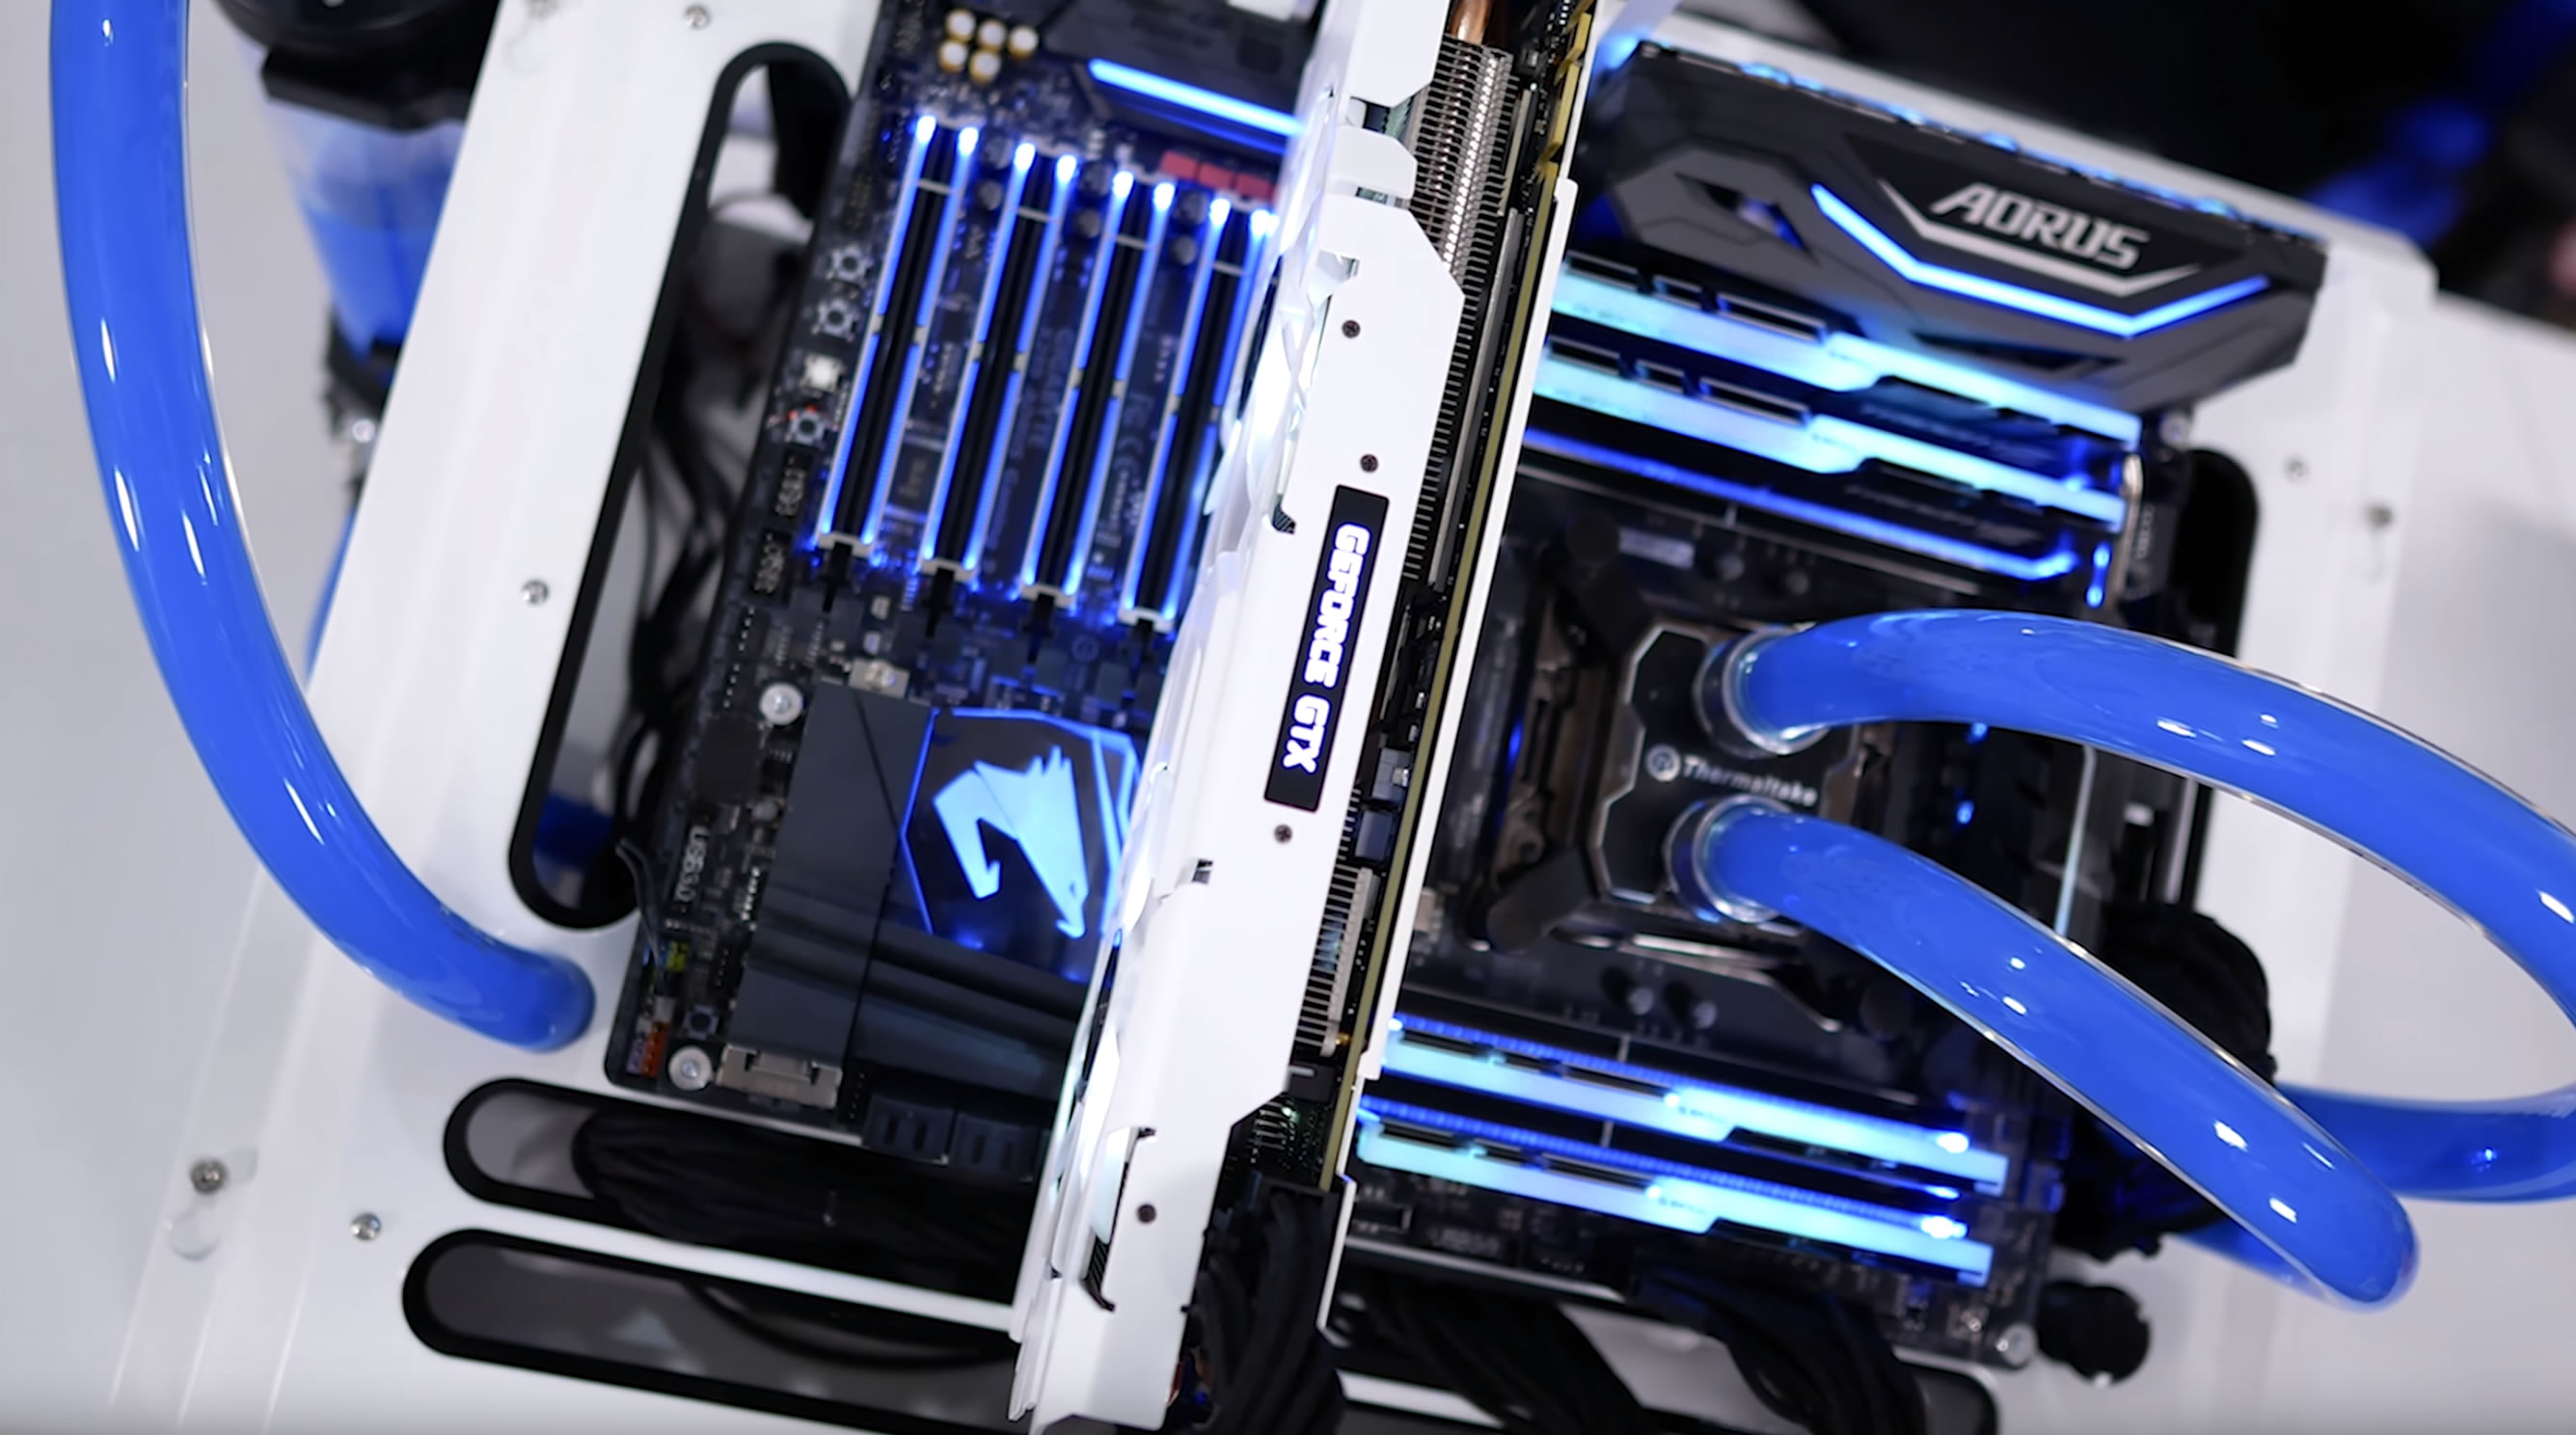 Pairing CPUs and GPUs: PC Upgrades and Bottlenecking - TechSpot